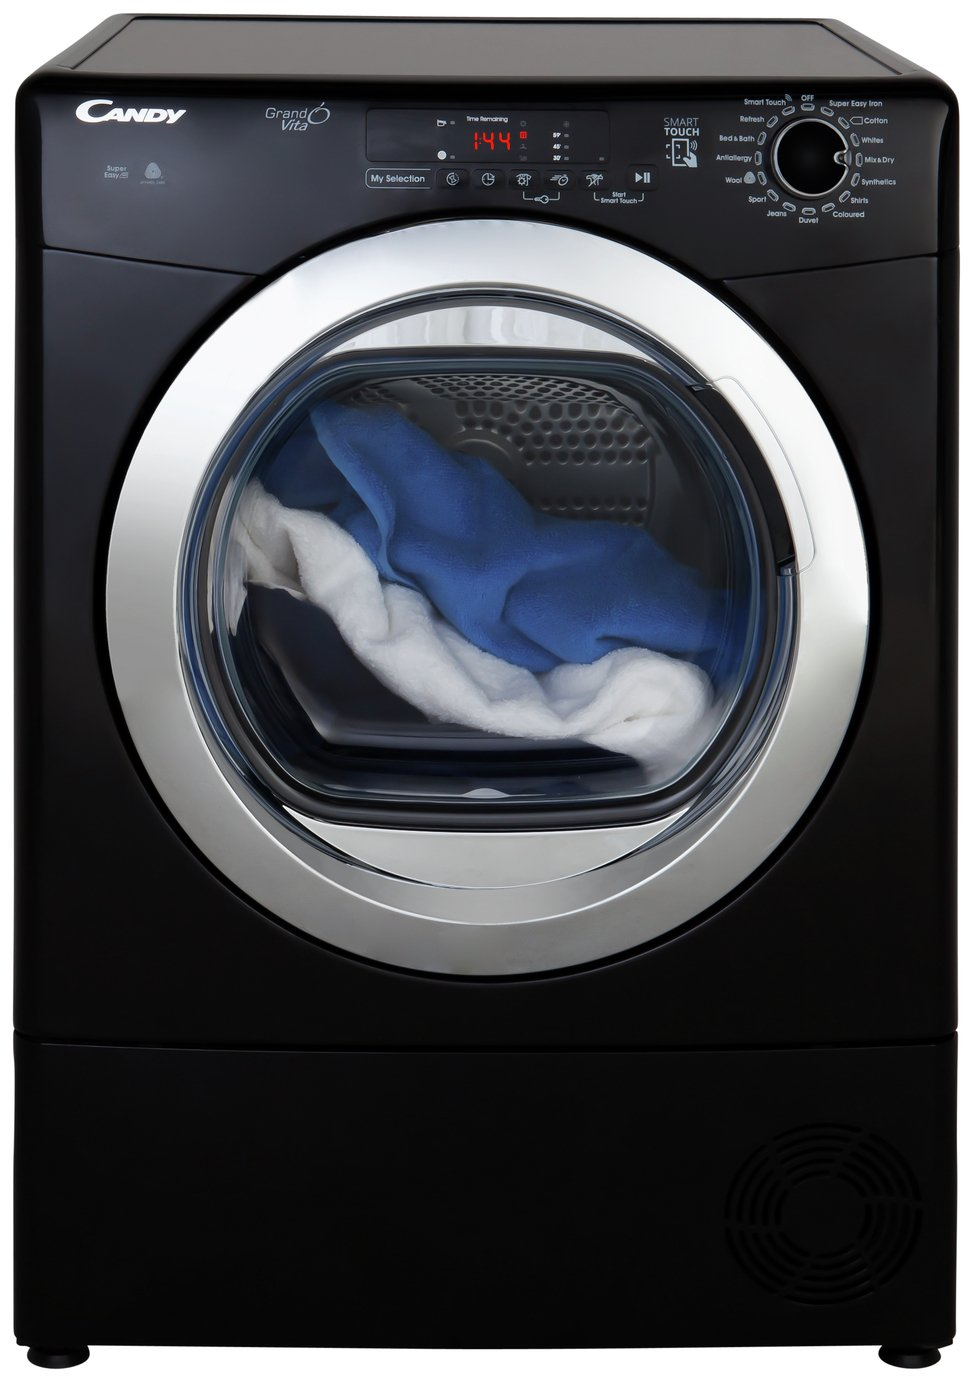 Candy GVS C10DCGB 10KG Condenser Tumble Dryer - Black